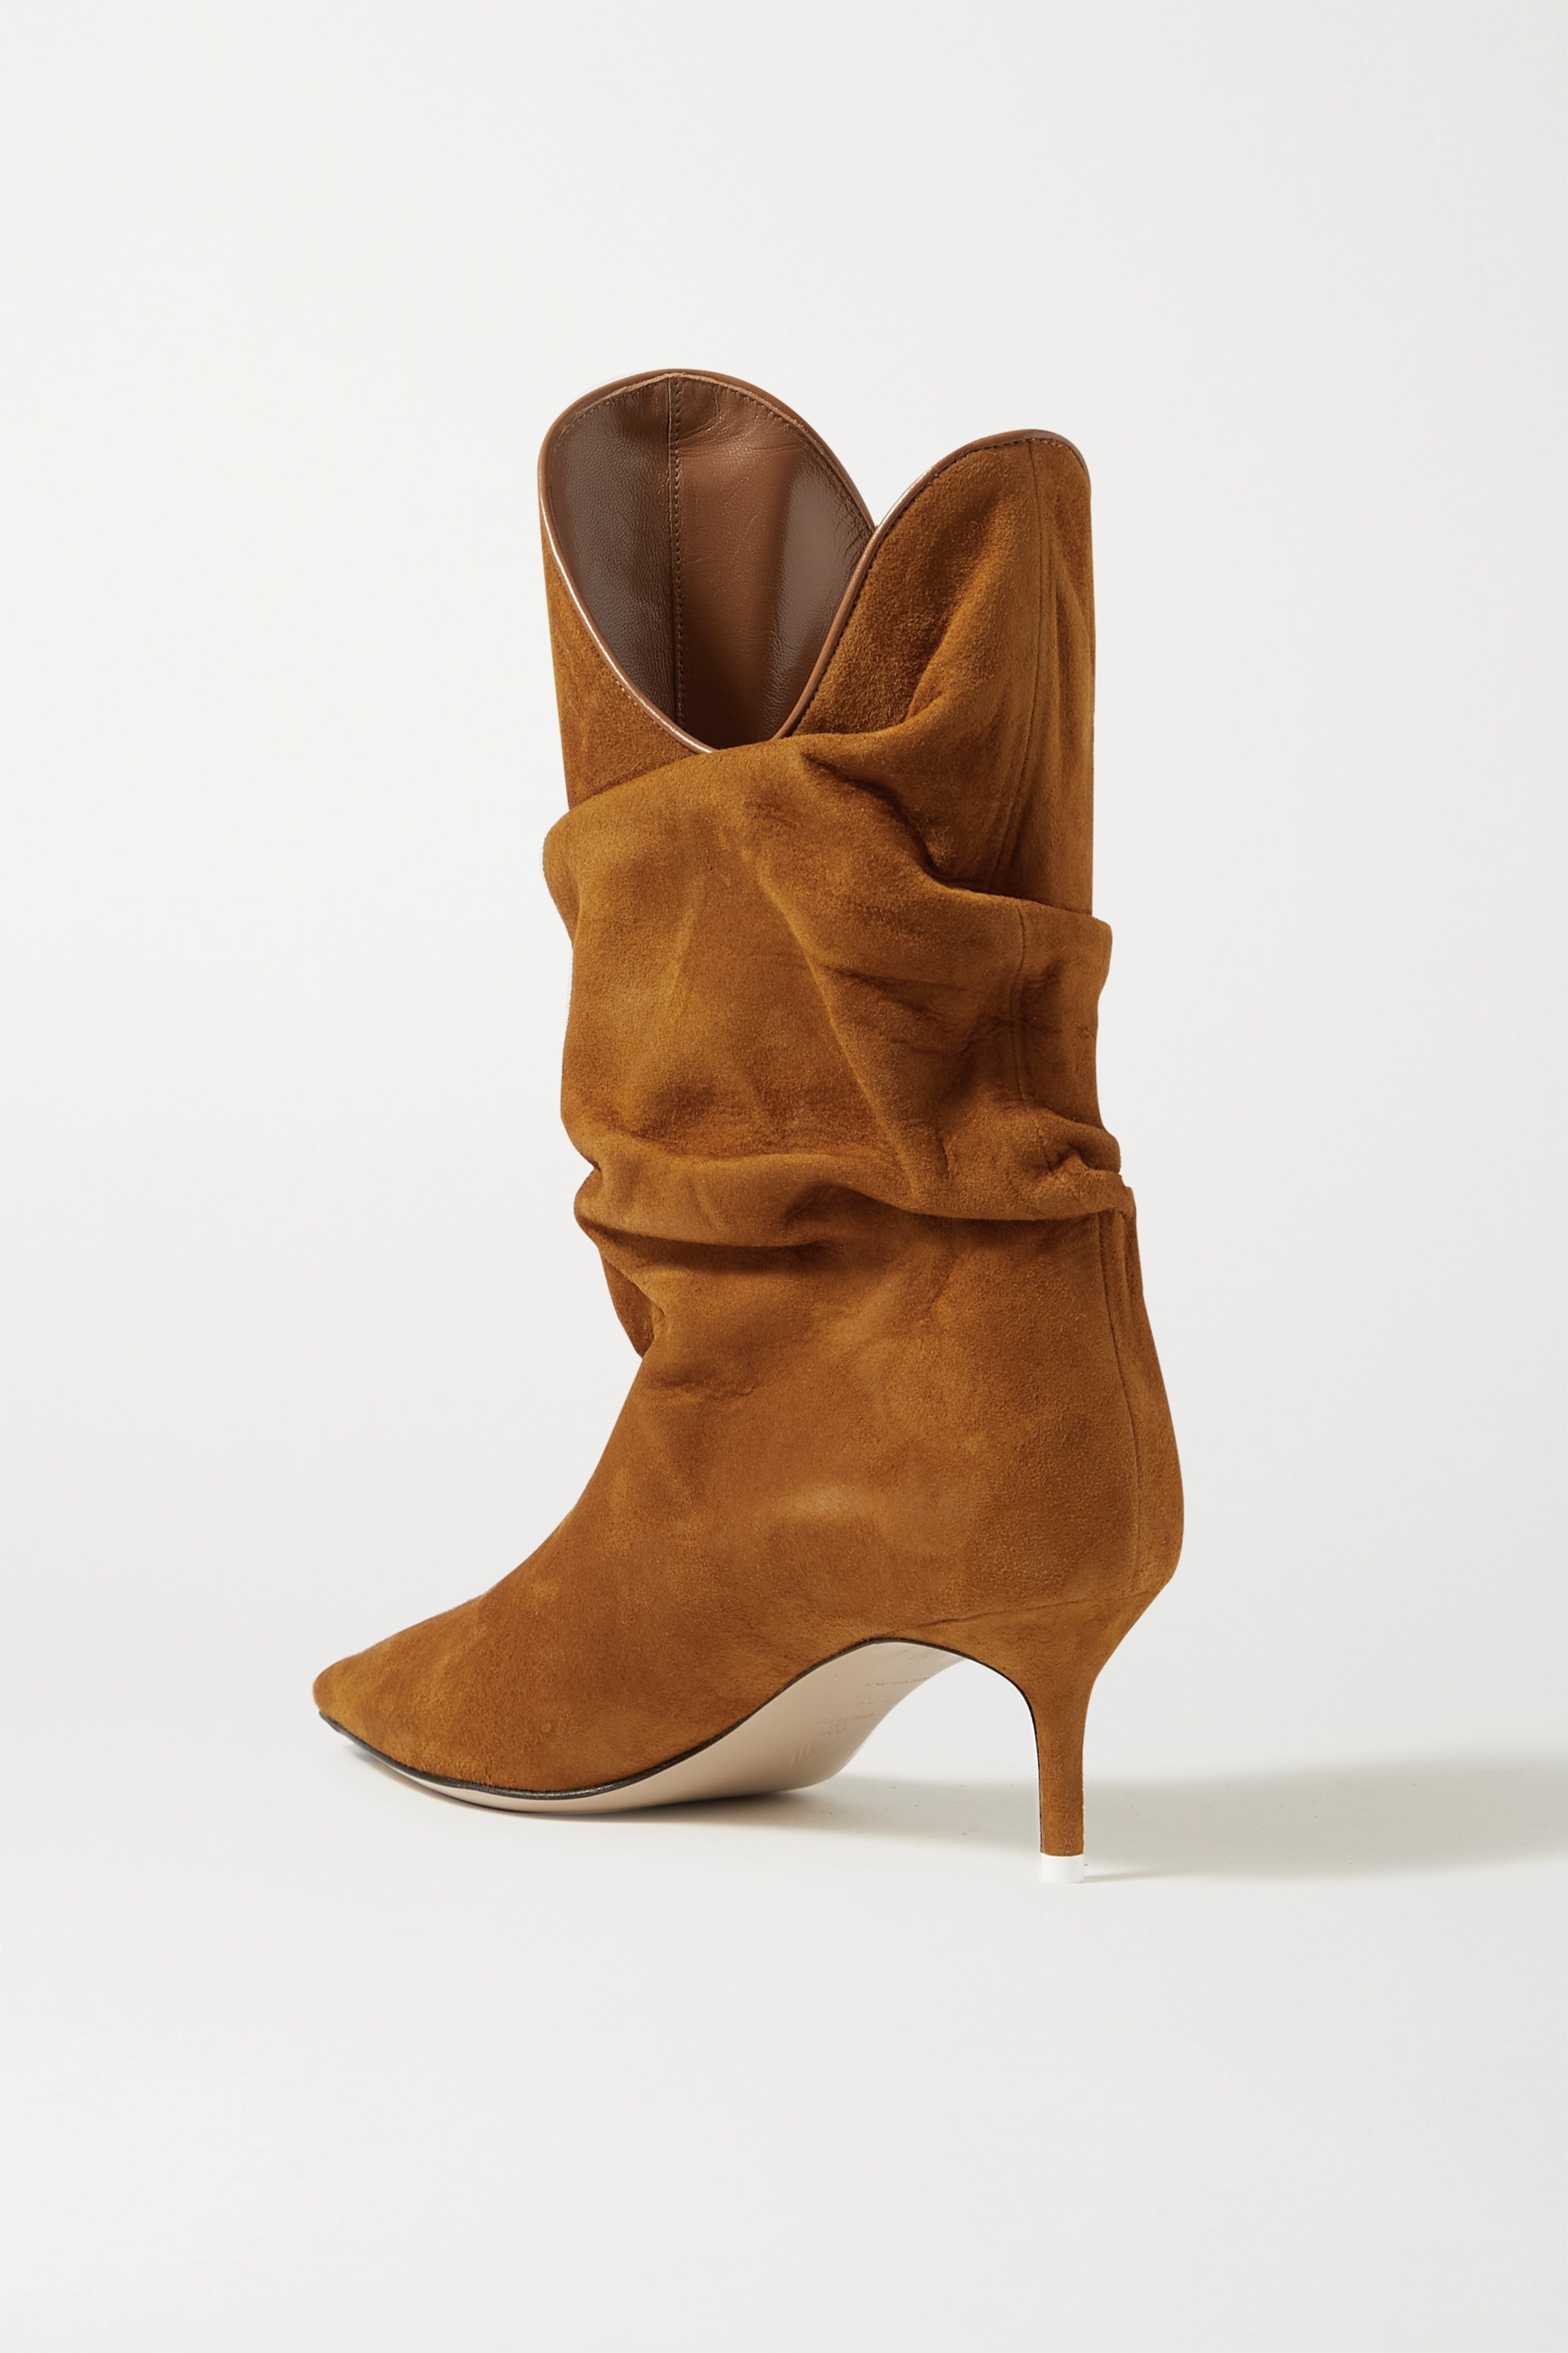 The Attico Tate suede ankle boots